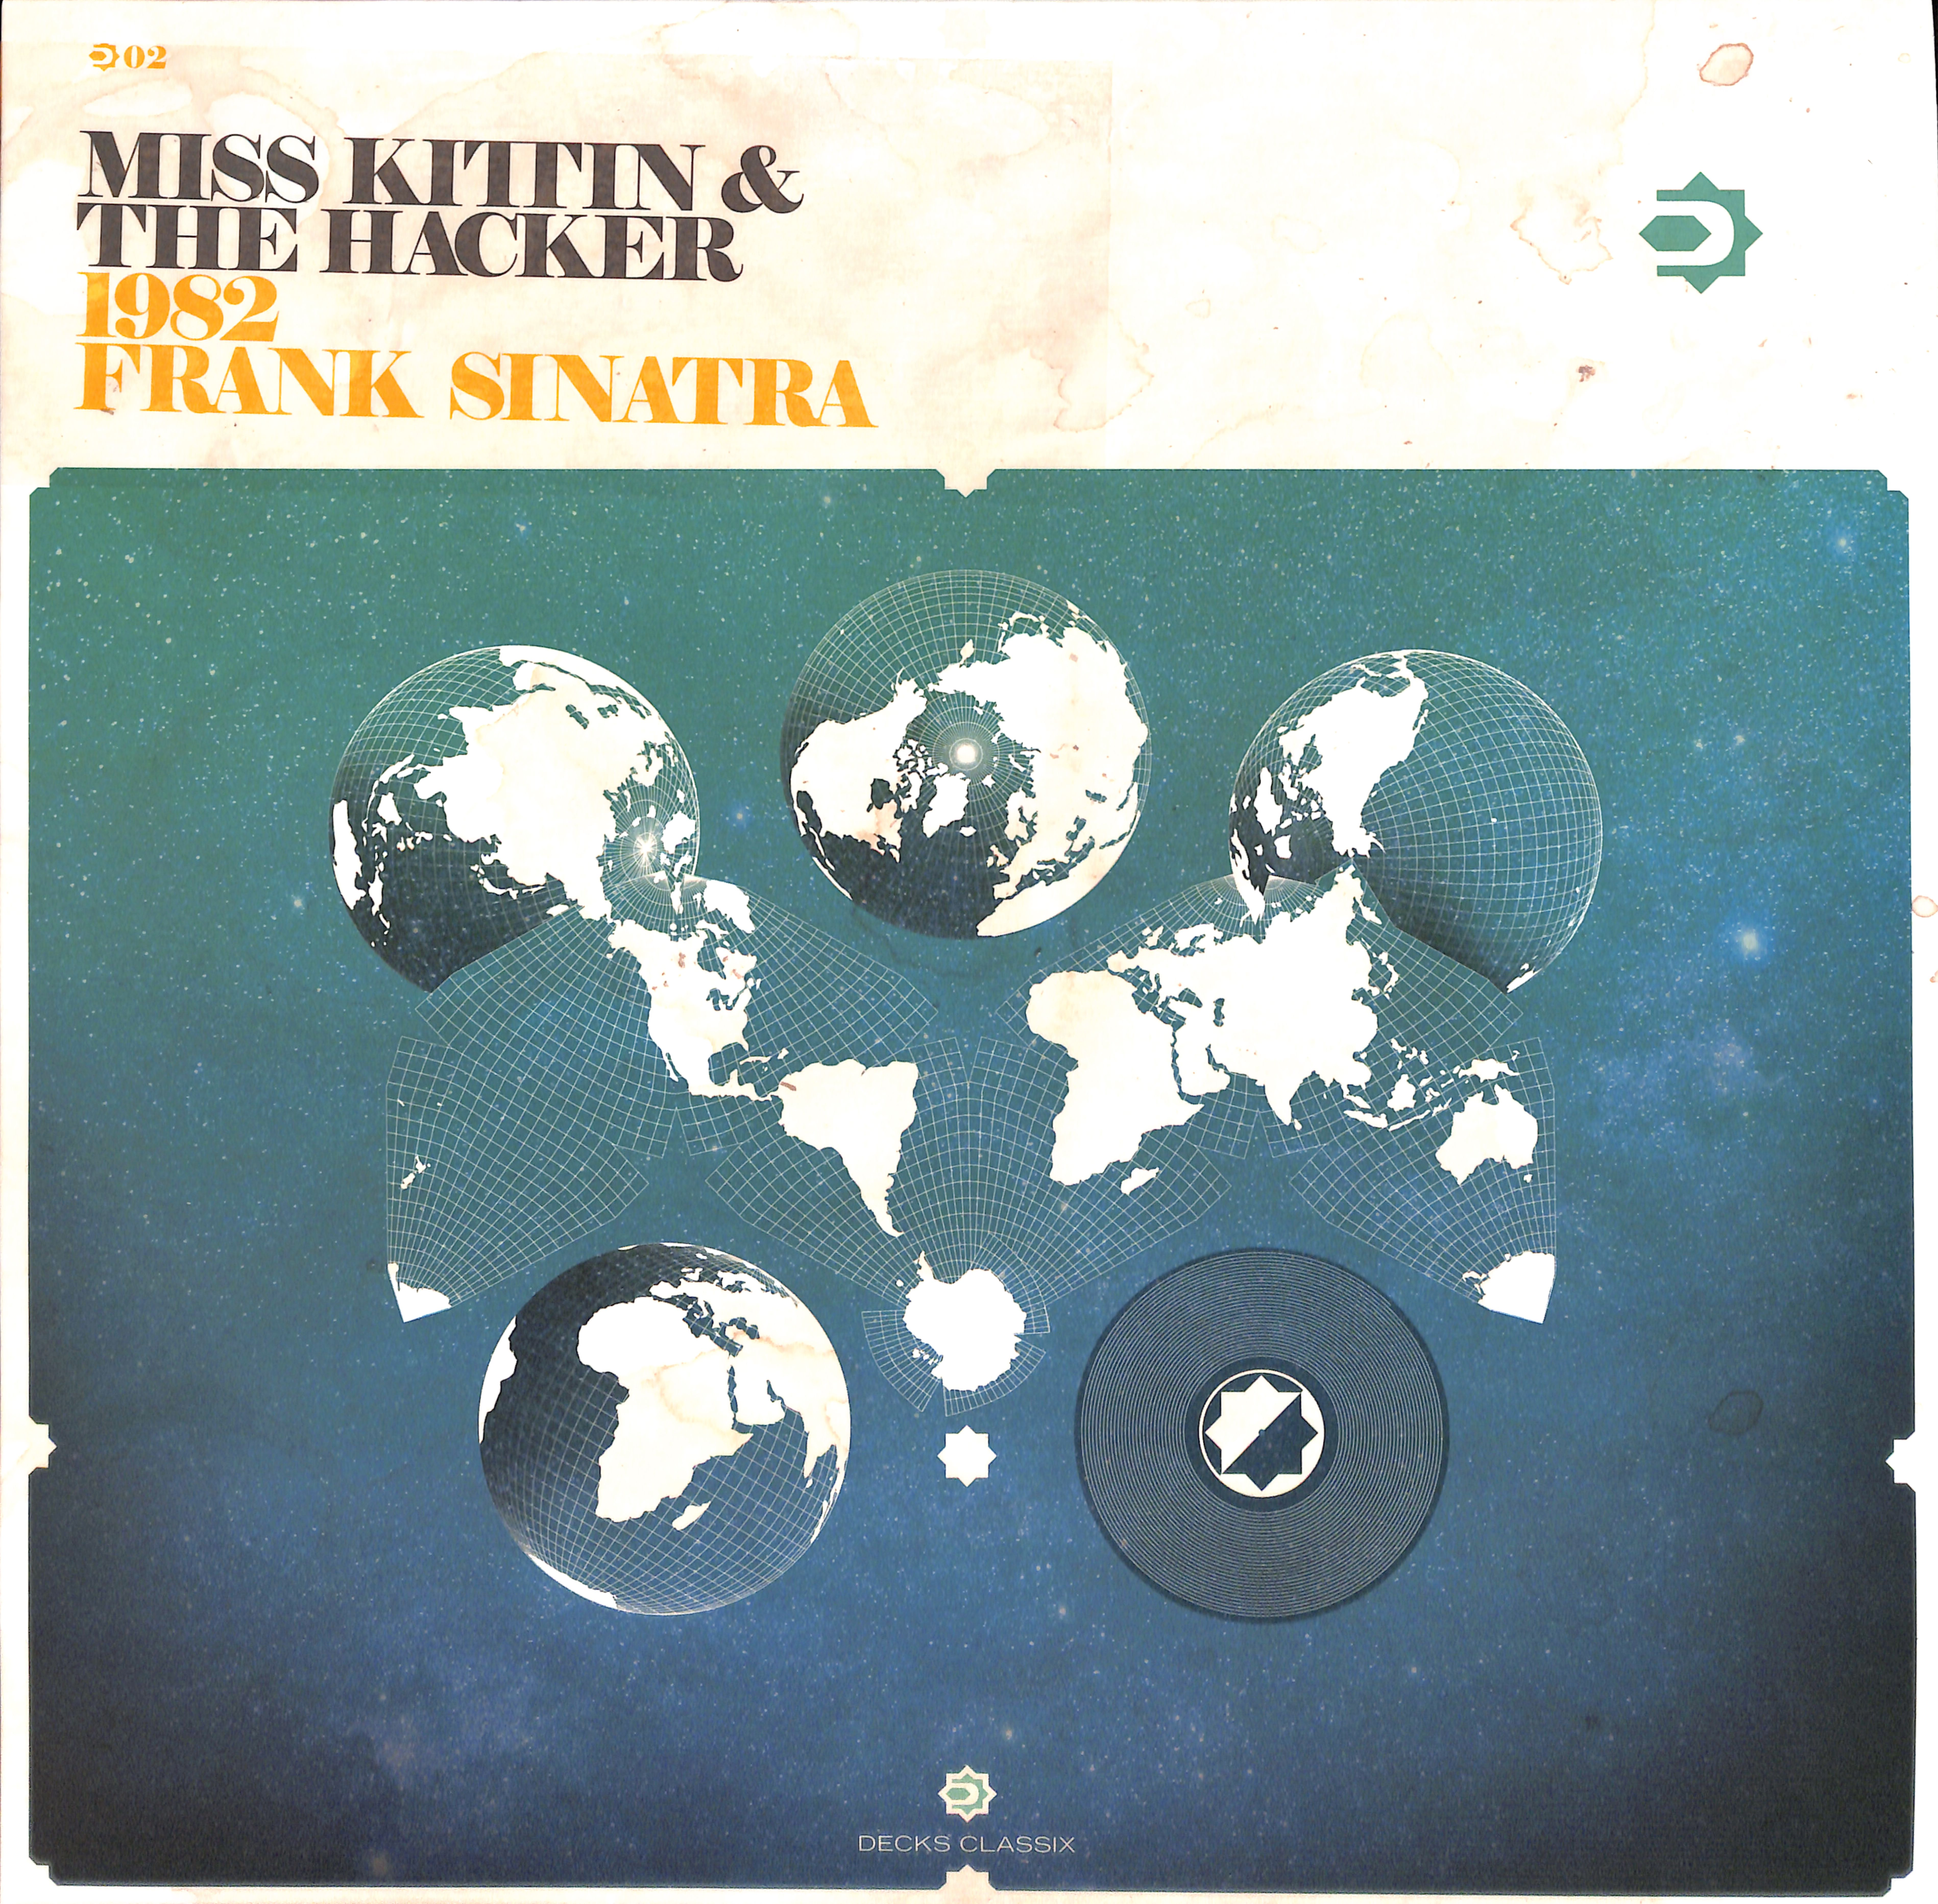 Miss Kittin & The Hacker - 1982 / FRANK SINATRA